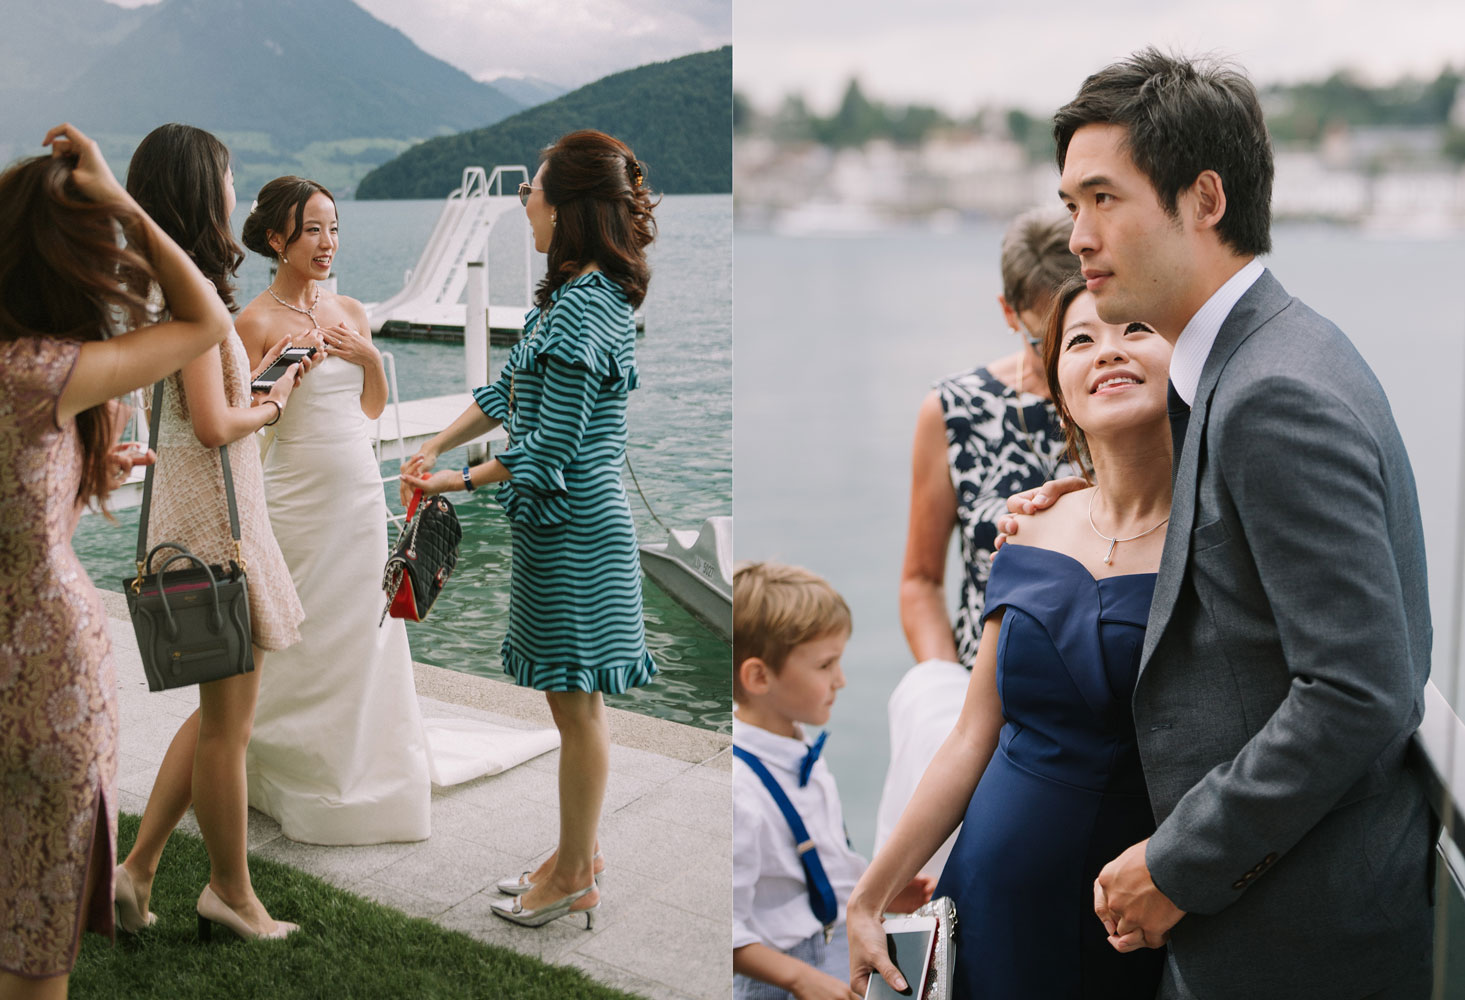 wedding_photographer_luzern_vitznau_47.jpg